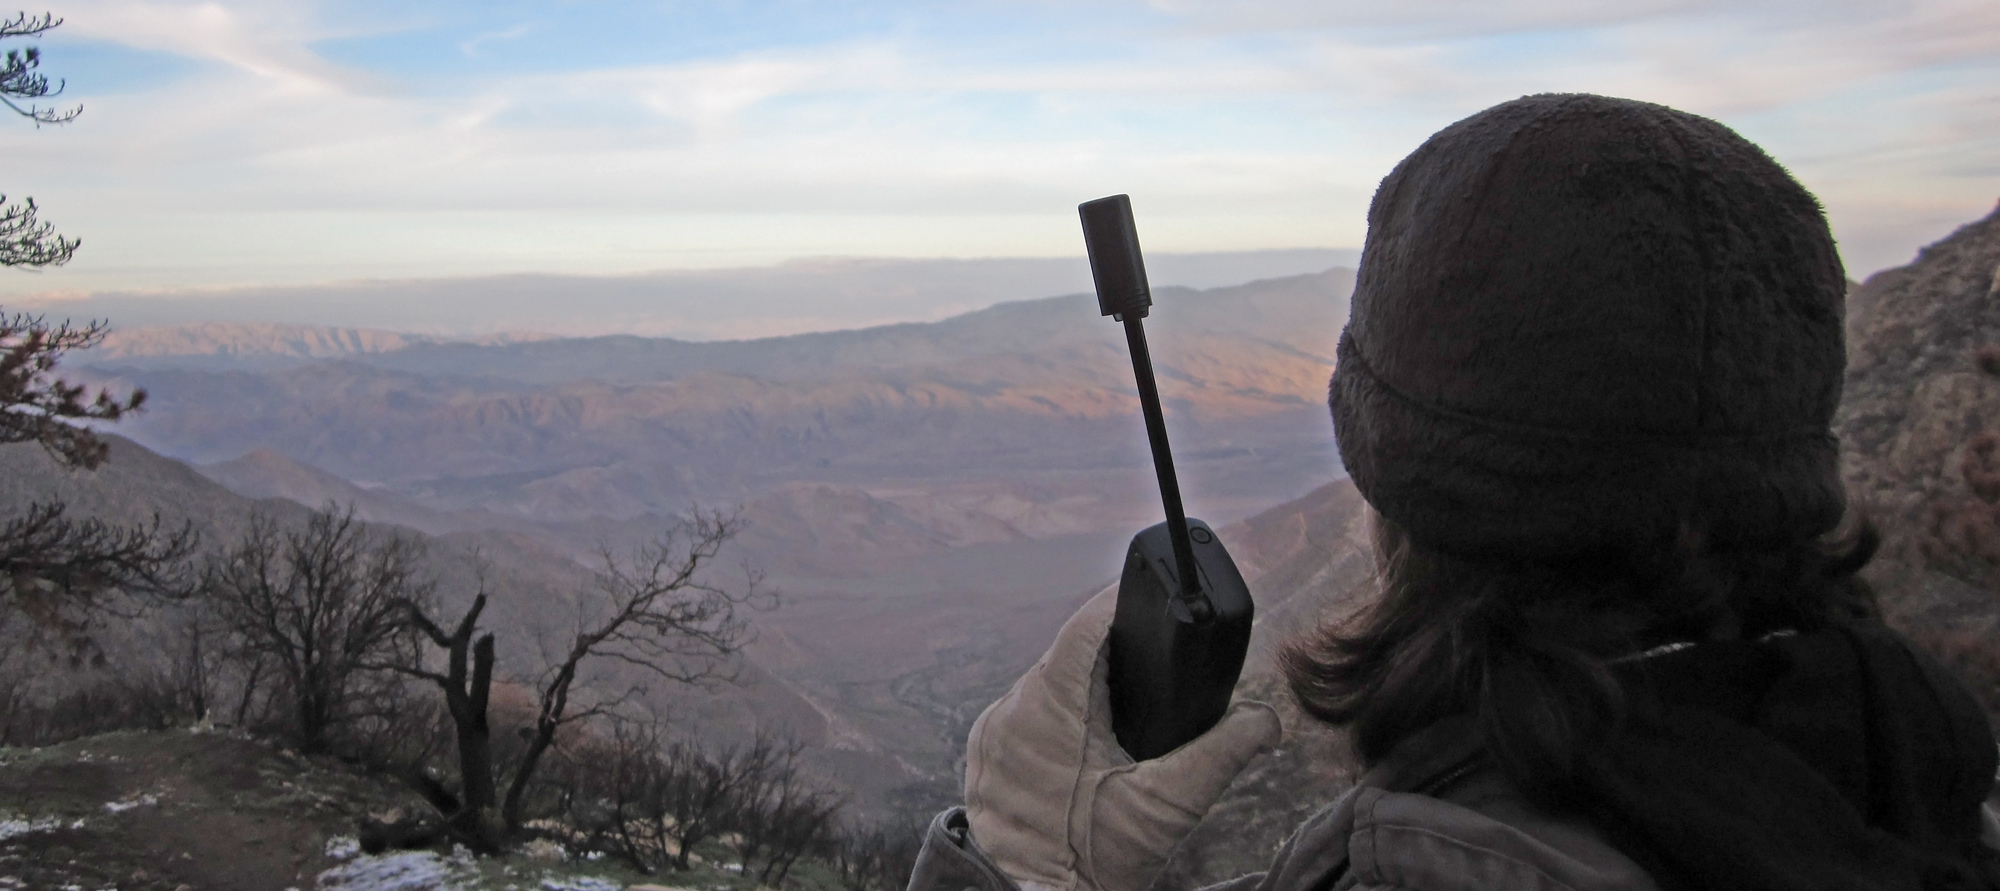 iridium-9555-satellite-phone-used-in-remote-area-northernaxcess.jpg